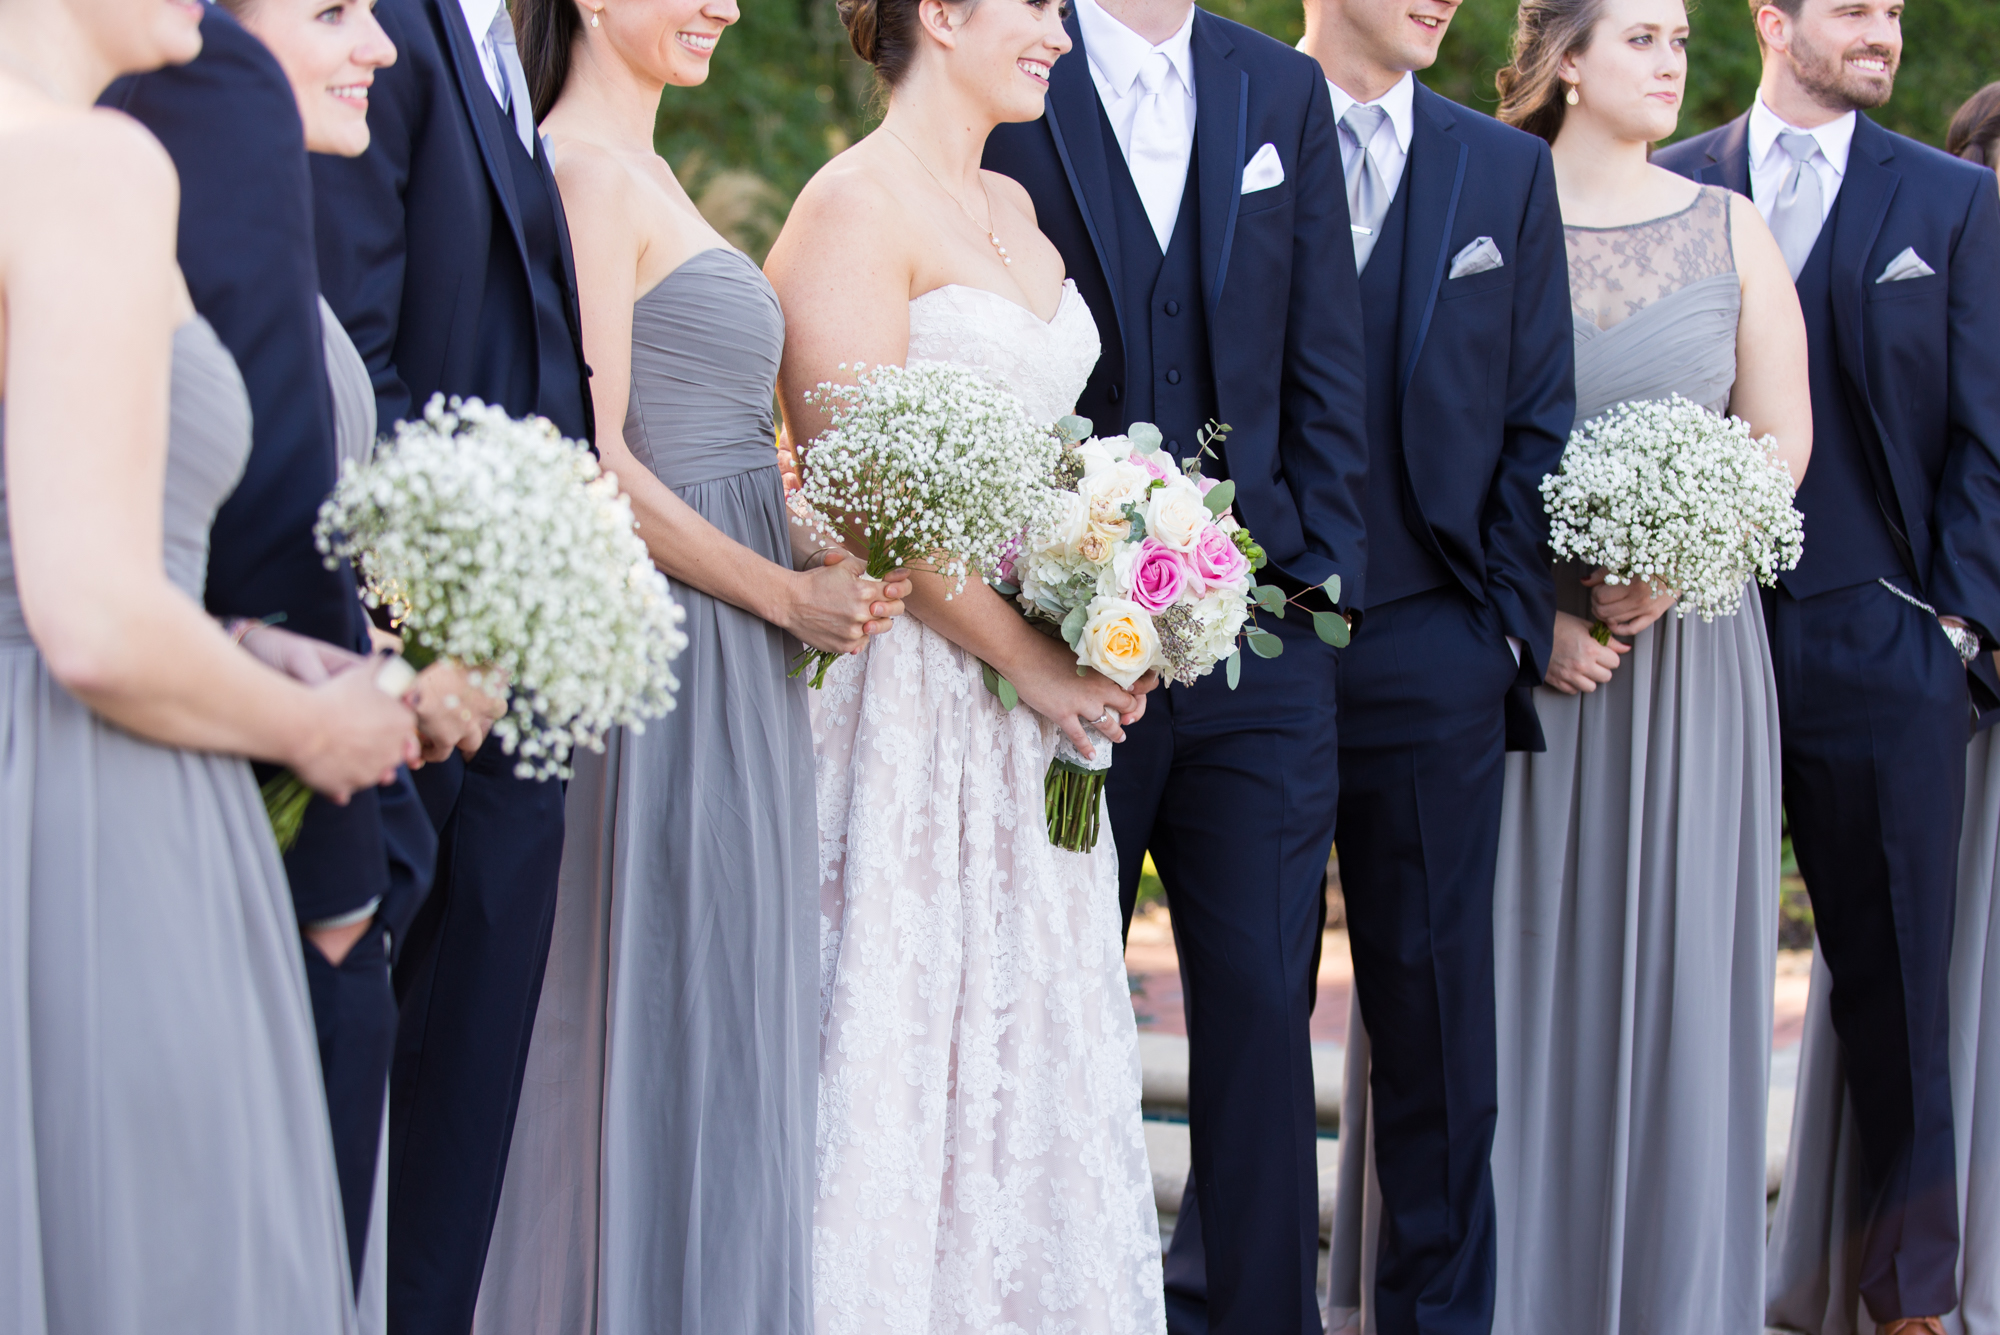 Bridesmaid Bouquets - Travel Themed Wedding - Caitlin Gerres Photography